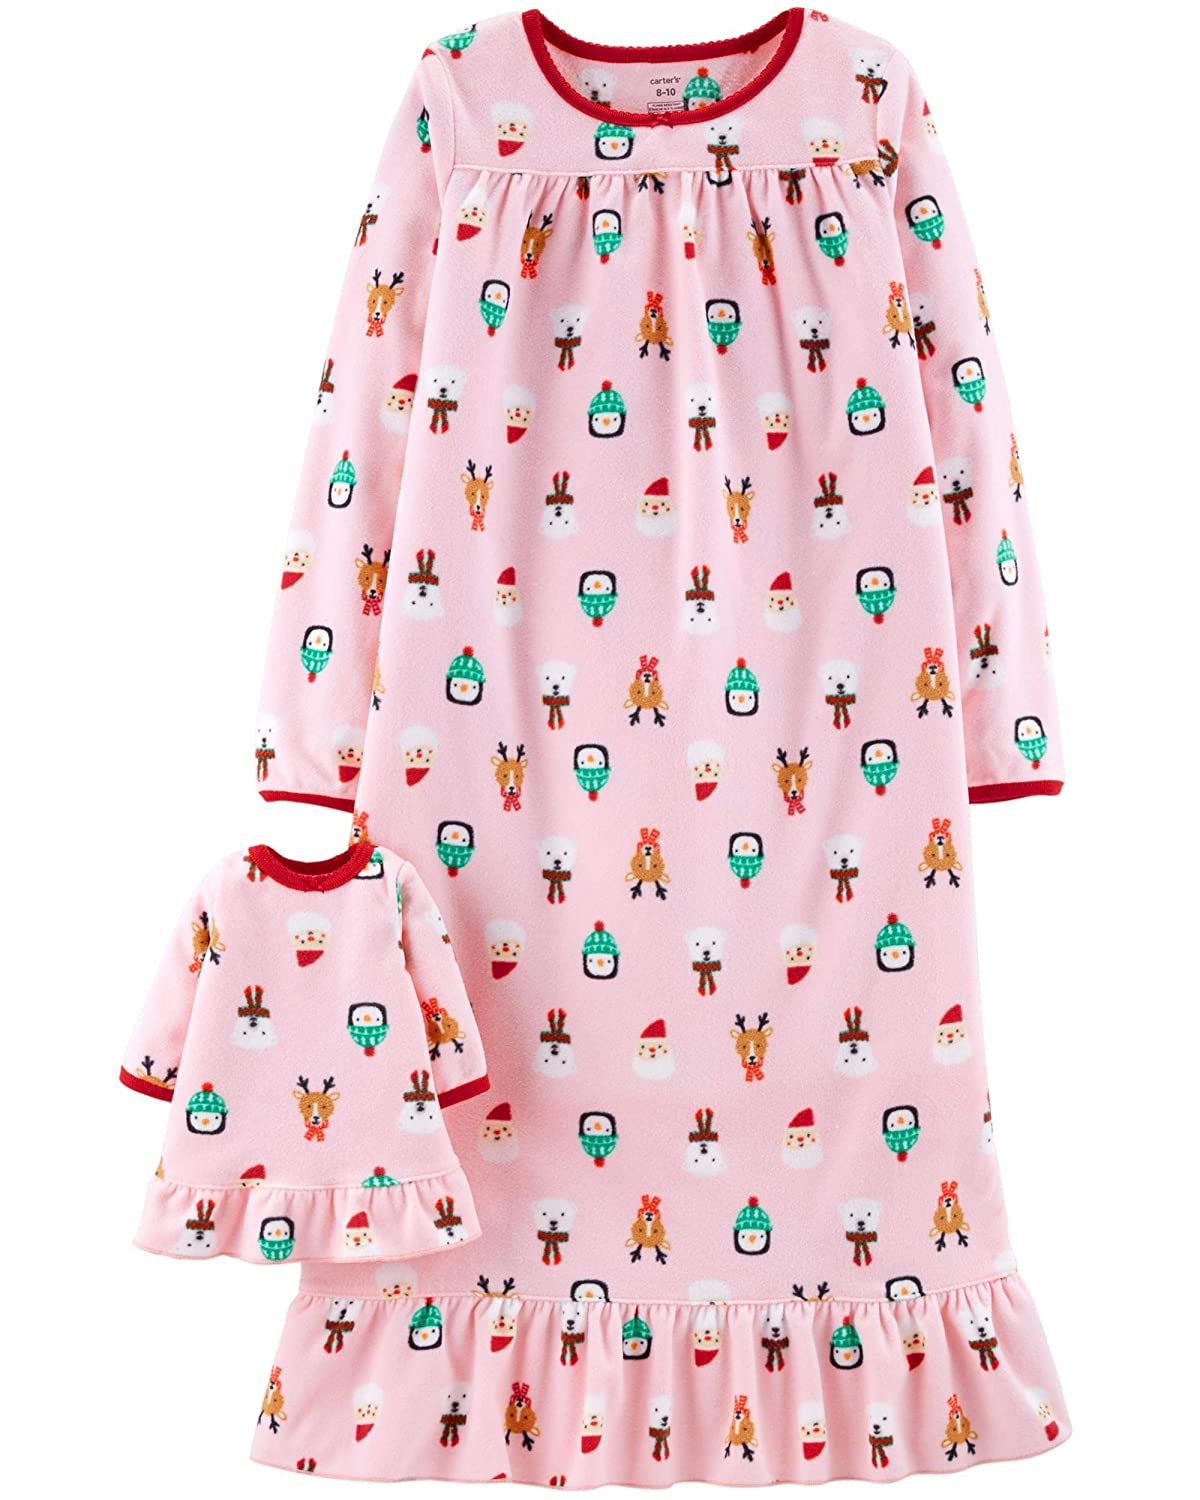 Carter's Girls Microfleece Nightgown and Doll Gown